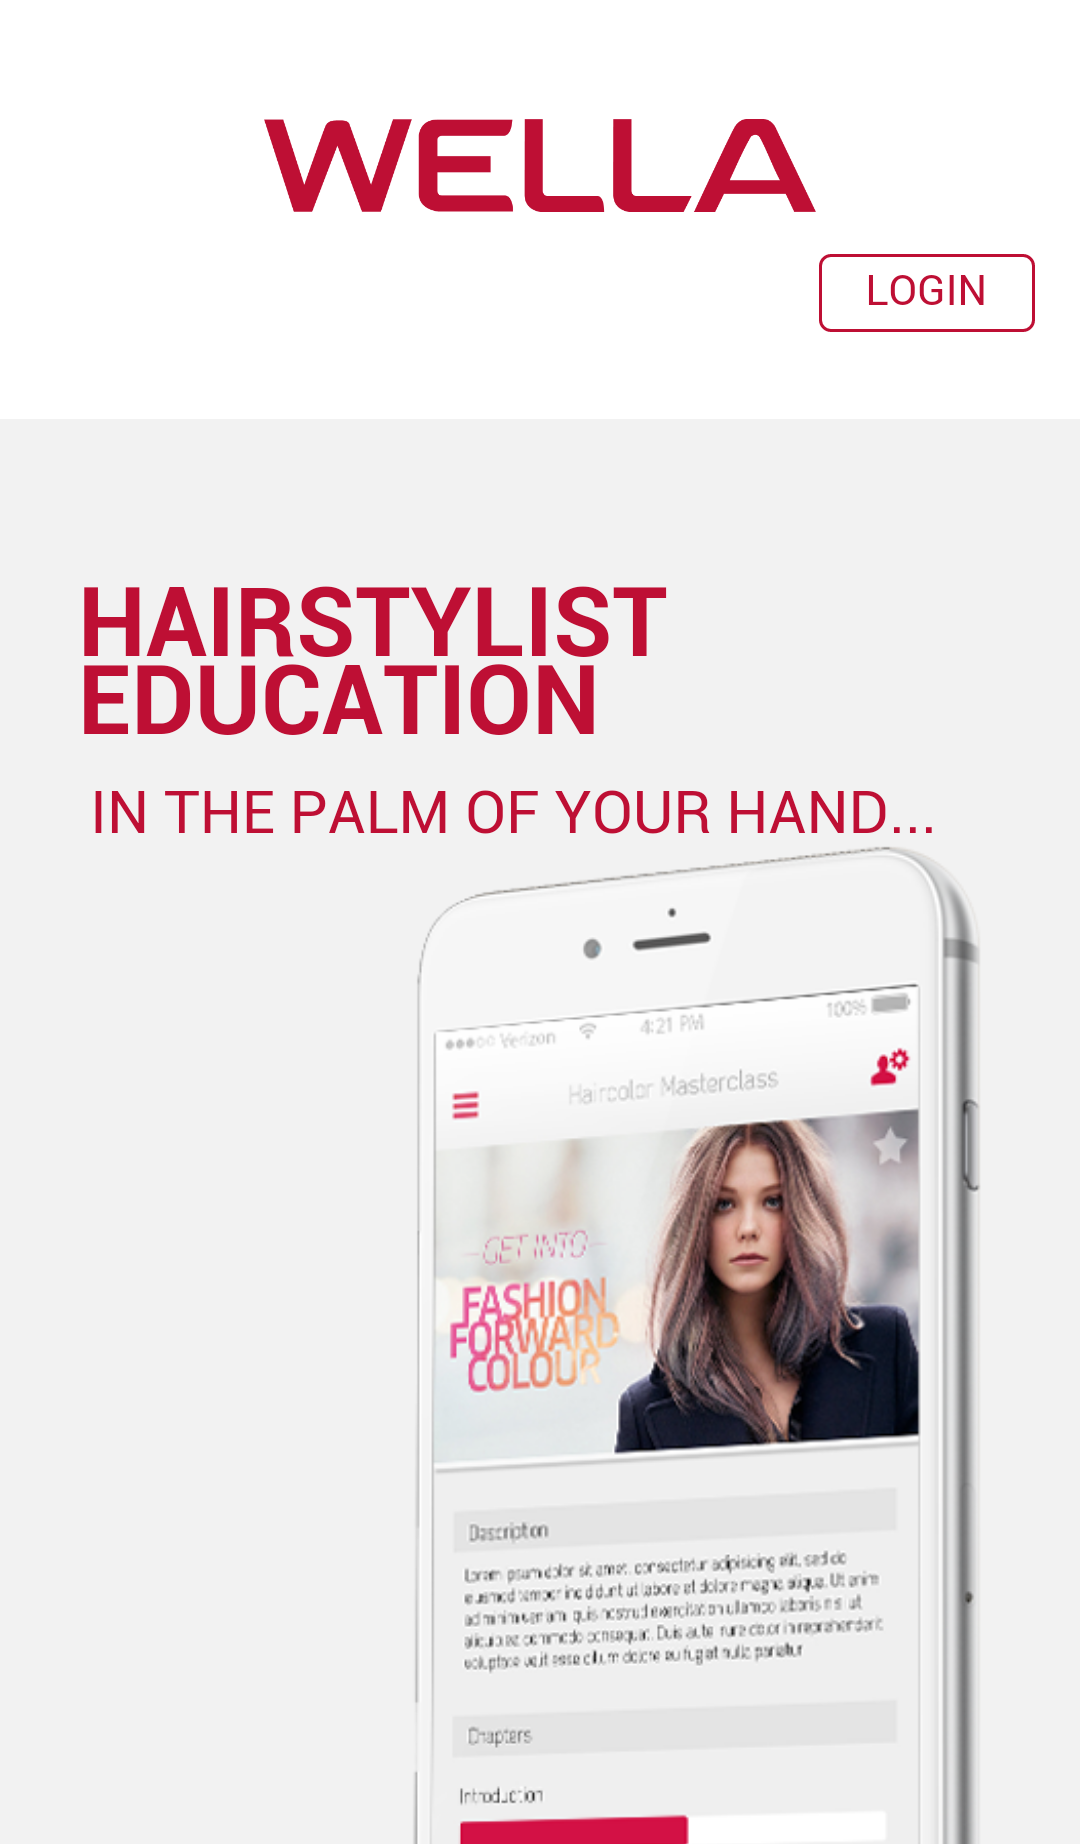 Wella Education App - DearHairdresser (4)